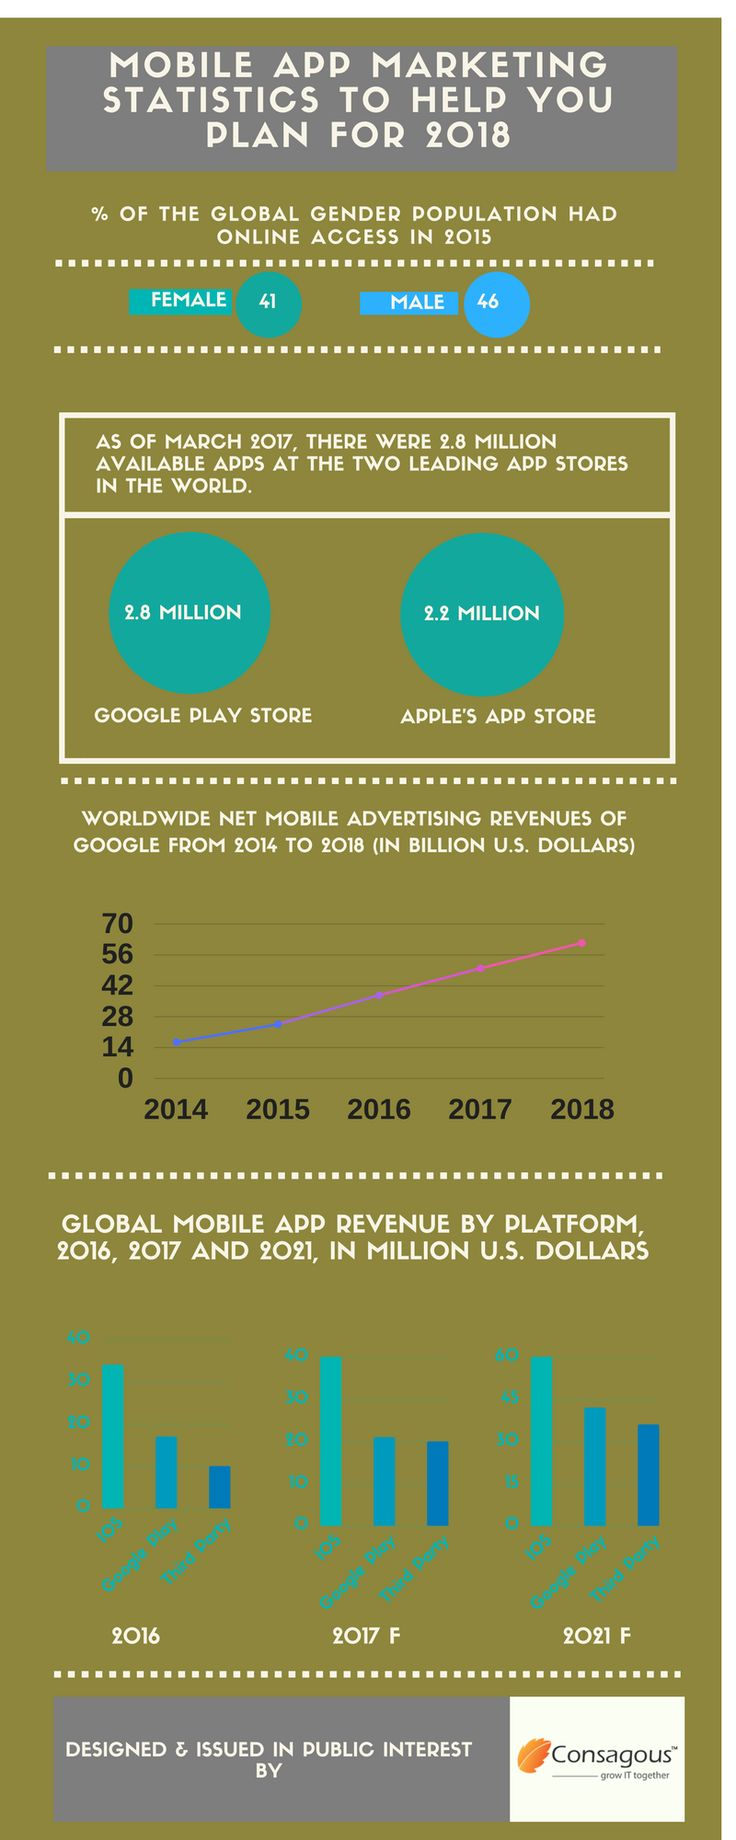 Did you know that 80% of internet users now own a smartphone. Check out our infographic on Global Mobile Internet Traffic for latest statistics and trends.